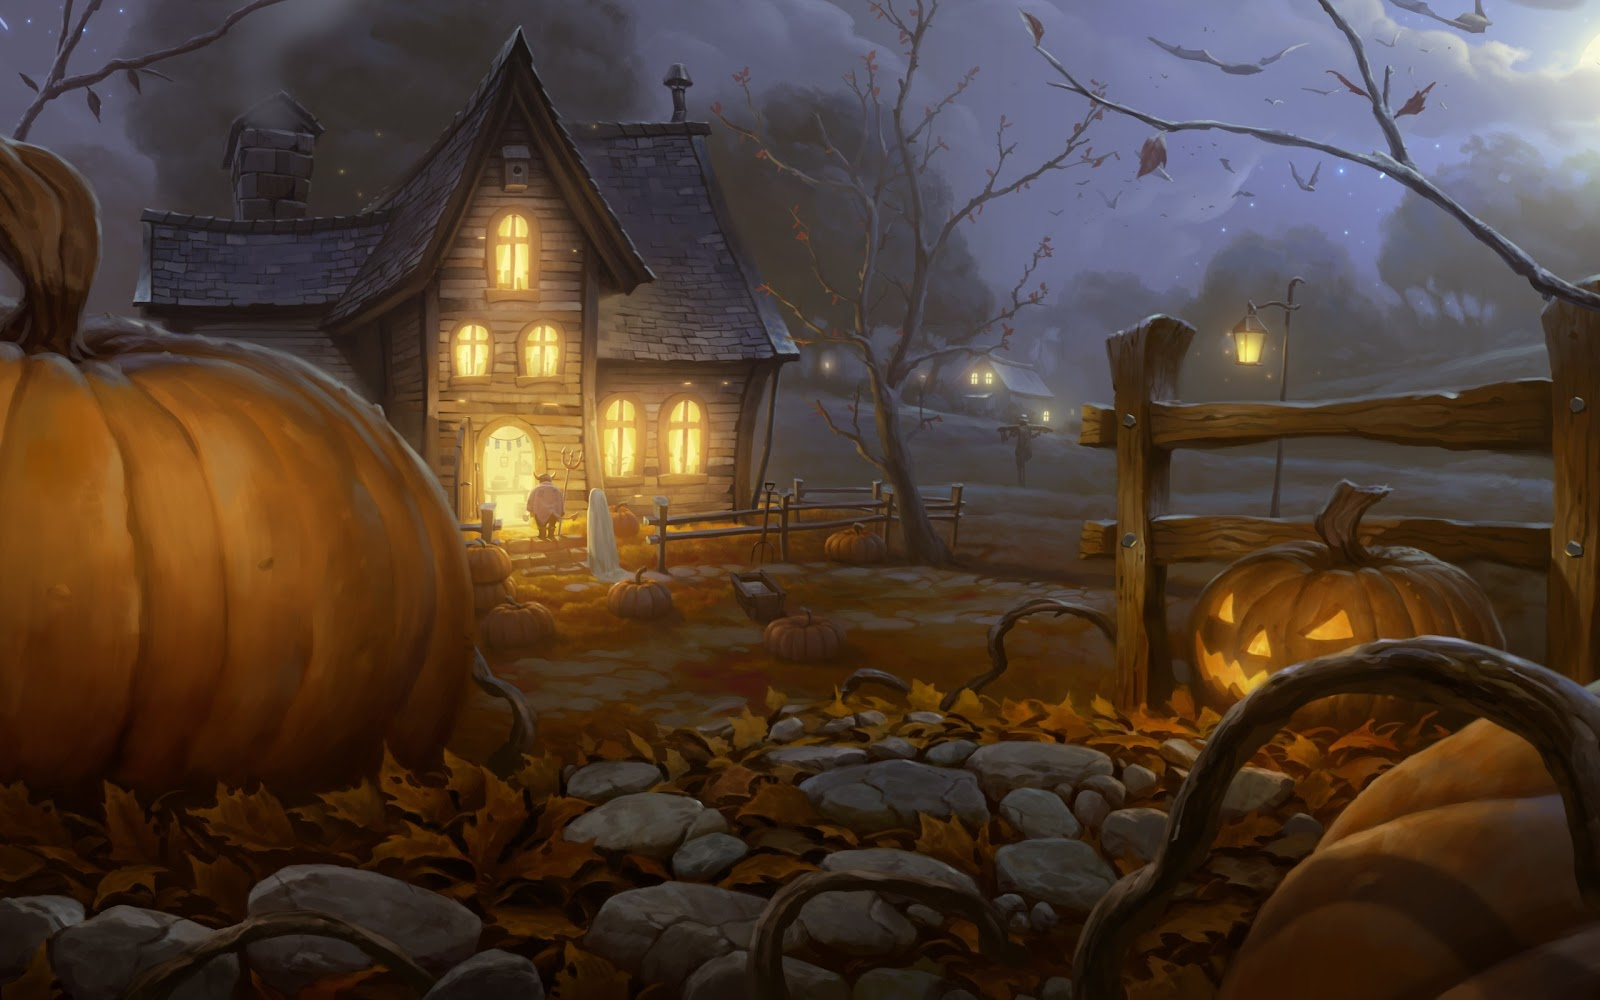 http://2.bp.blogspot.com/-jWEgsSK5bpA/UHbqxKzKNhI/AAAAAAAAHSY/z-jBmhHUc7Y/s1600/Halloween+Wallpaper+Background+006.jpg